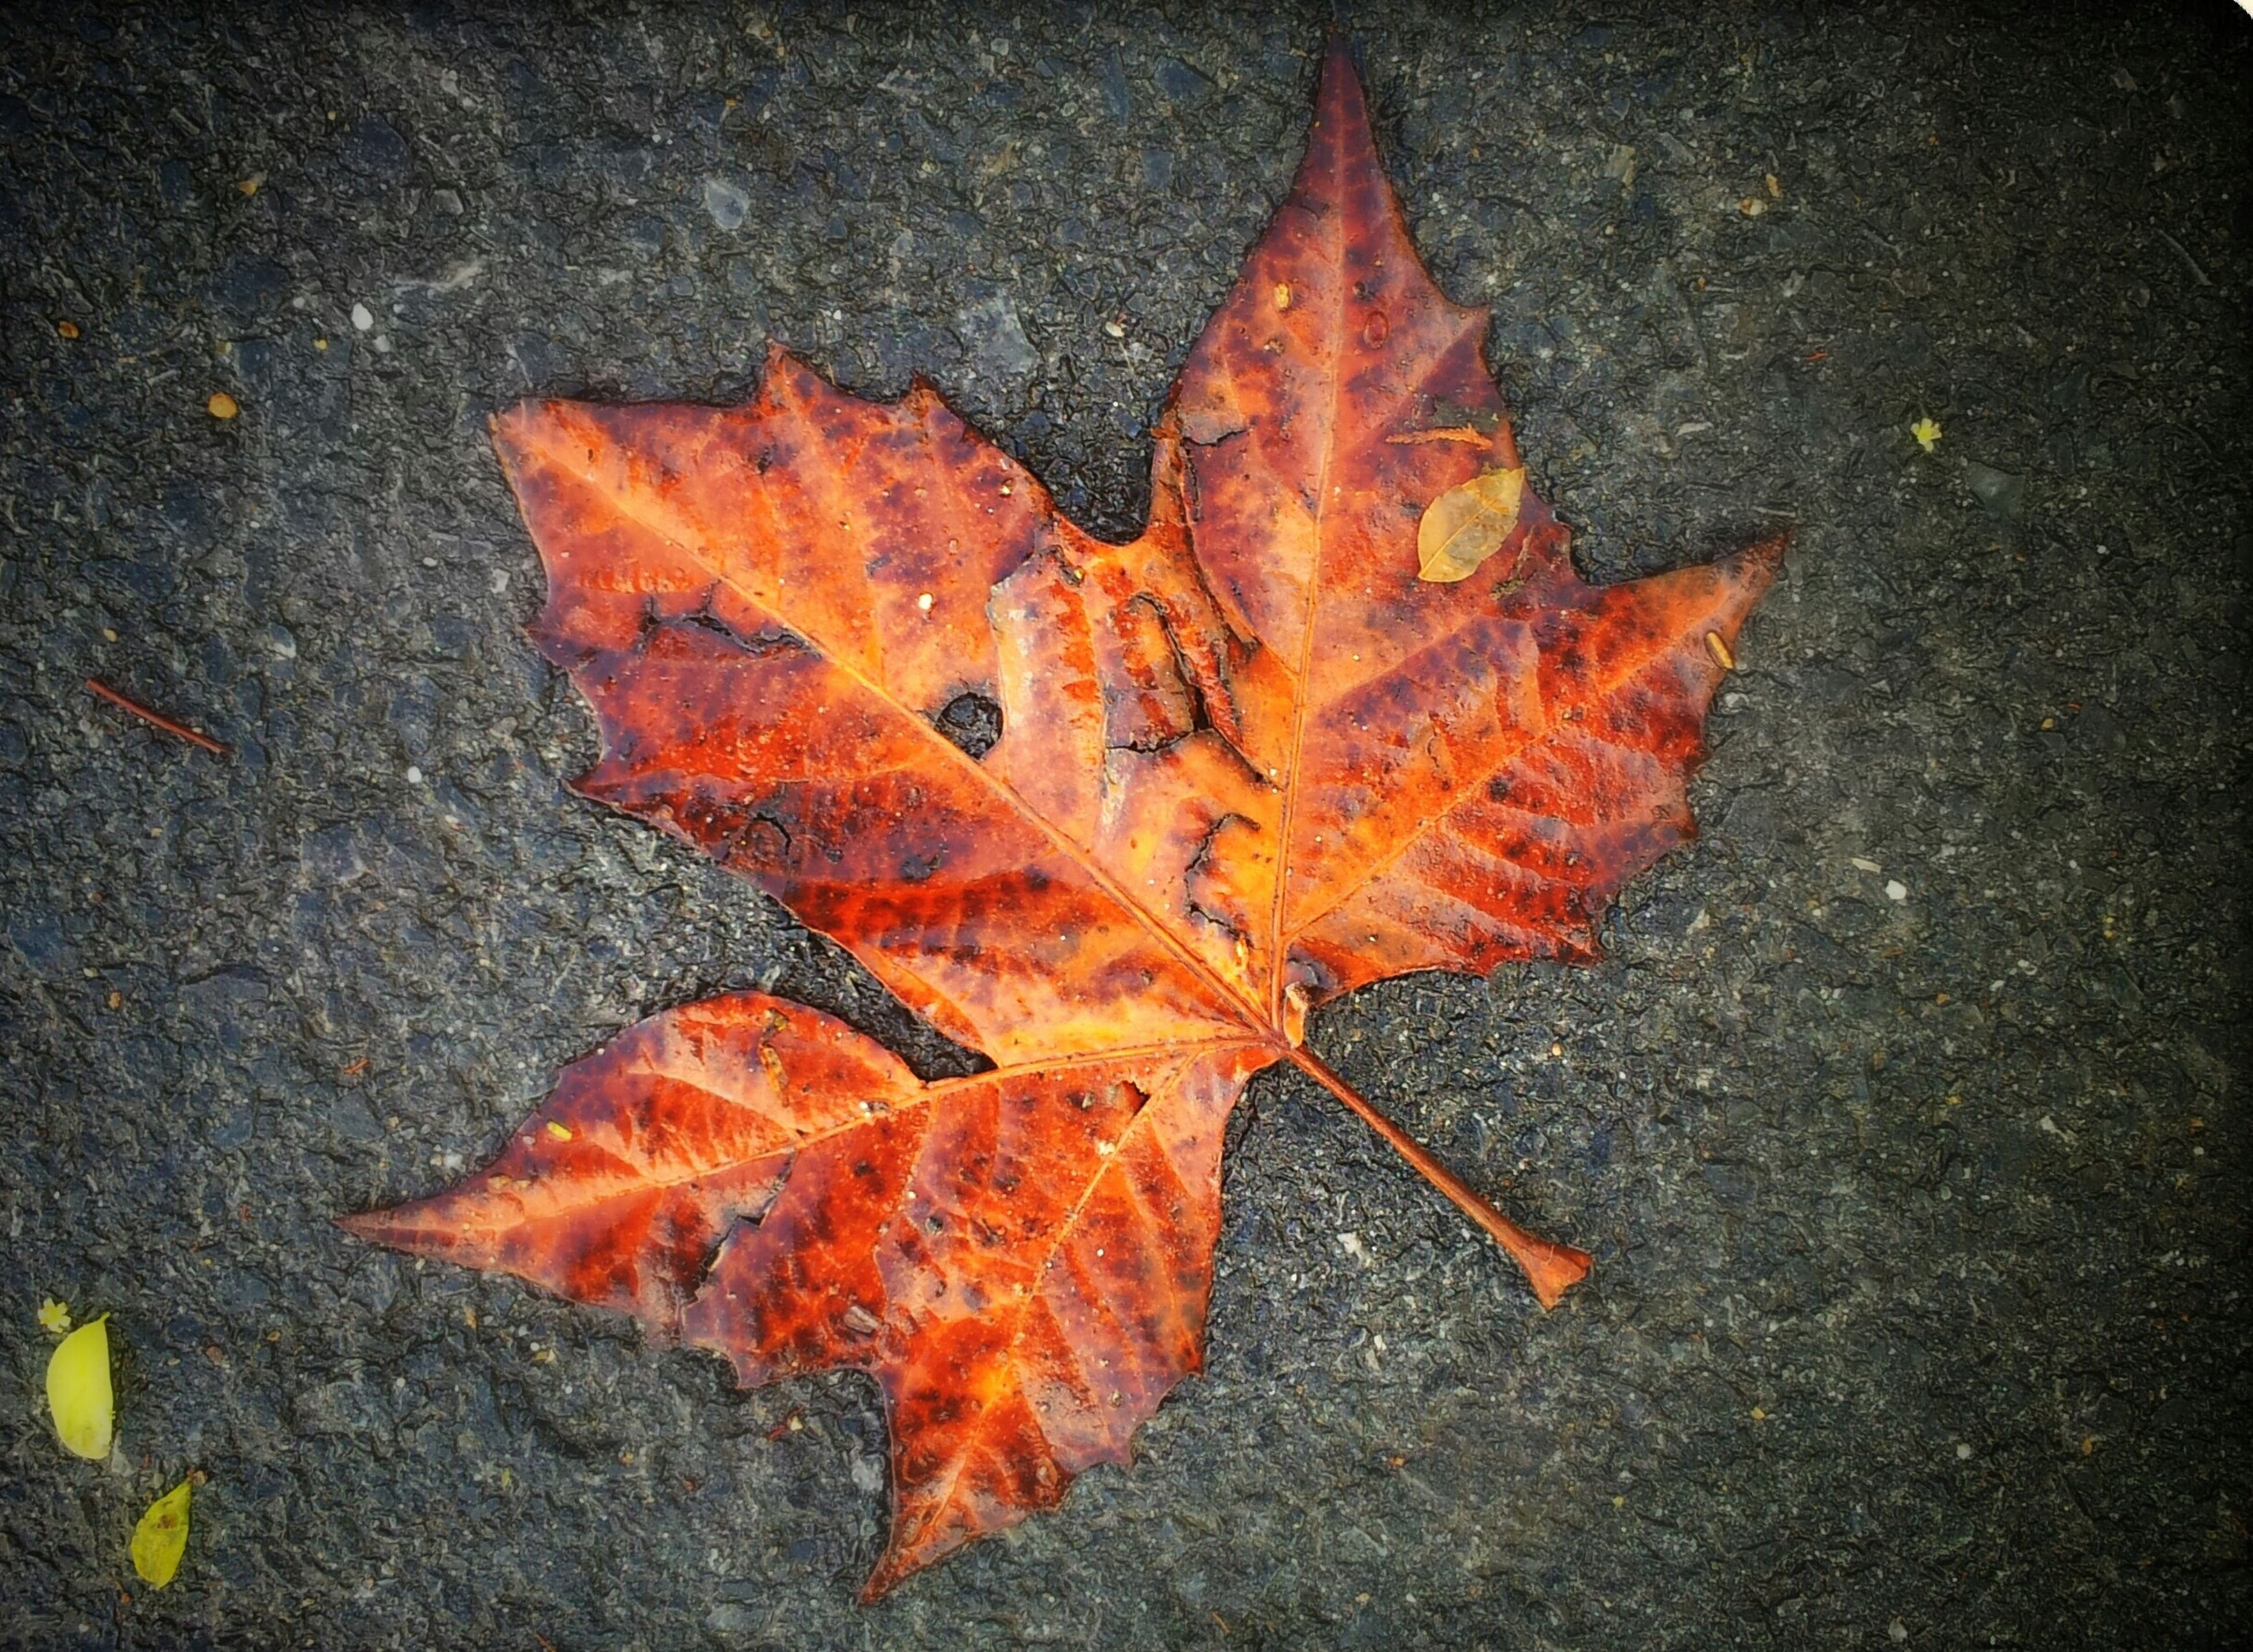 autumn, change, leaf, season, dry, leaves, maple leaf, orange color, fallen, leaf vein, close-up, natural pattern, high angle view, natural condition, nature, aging process, street, ground, outdoors, day